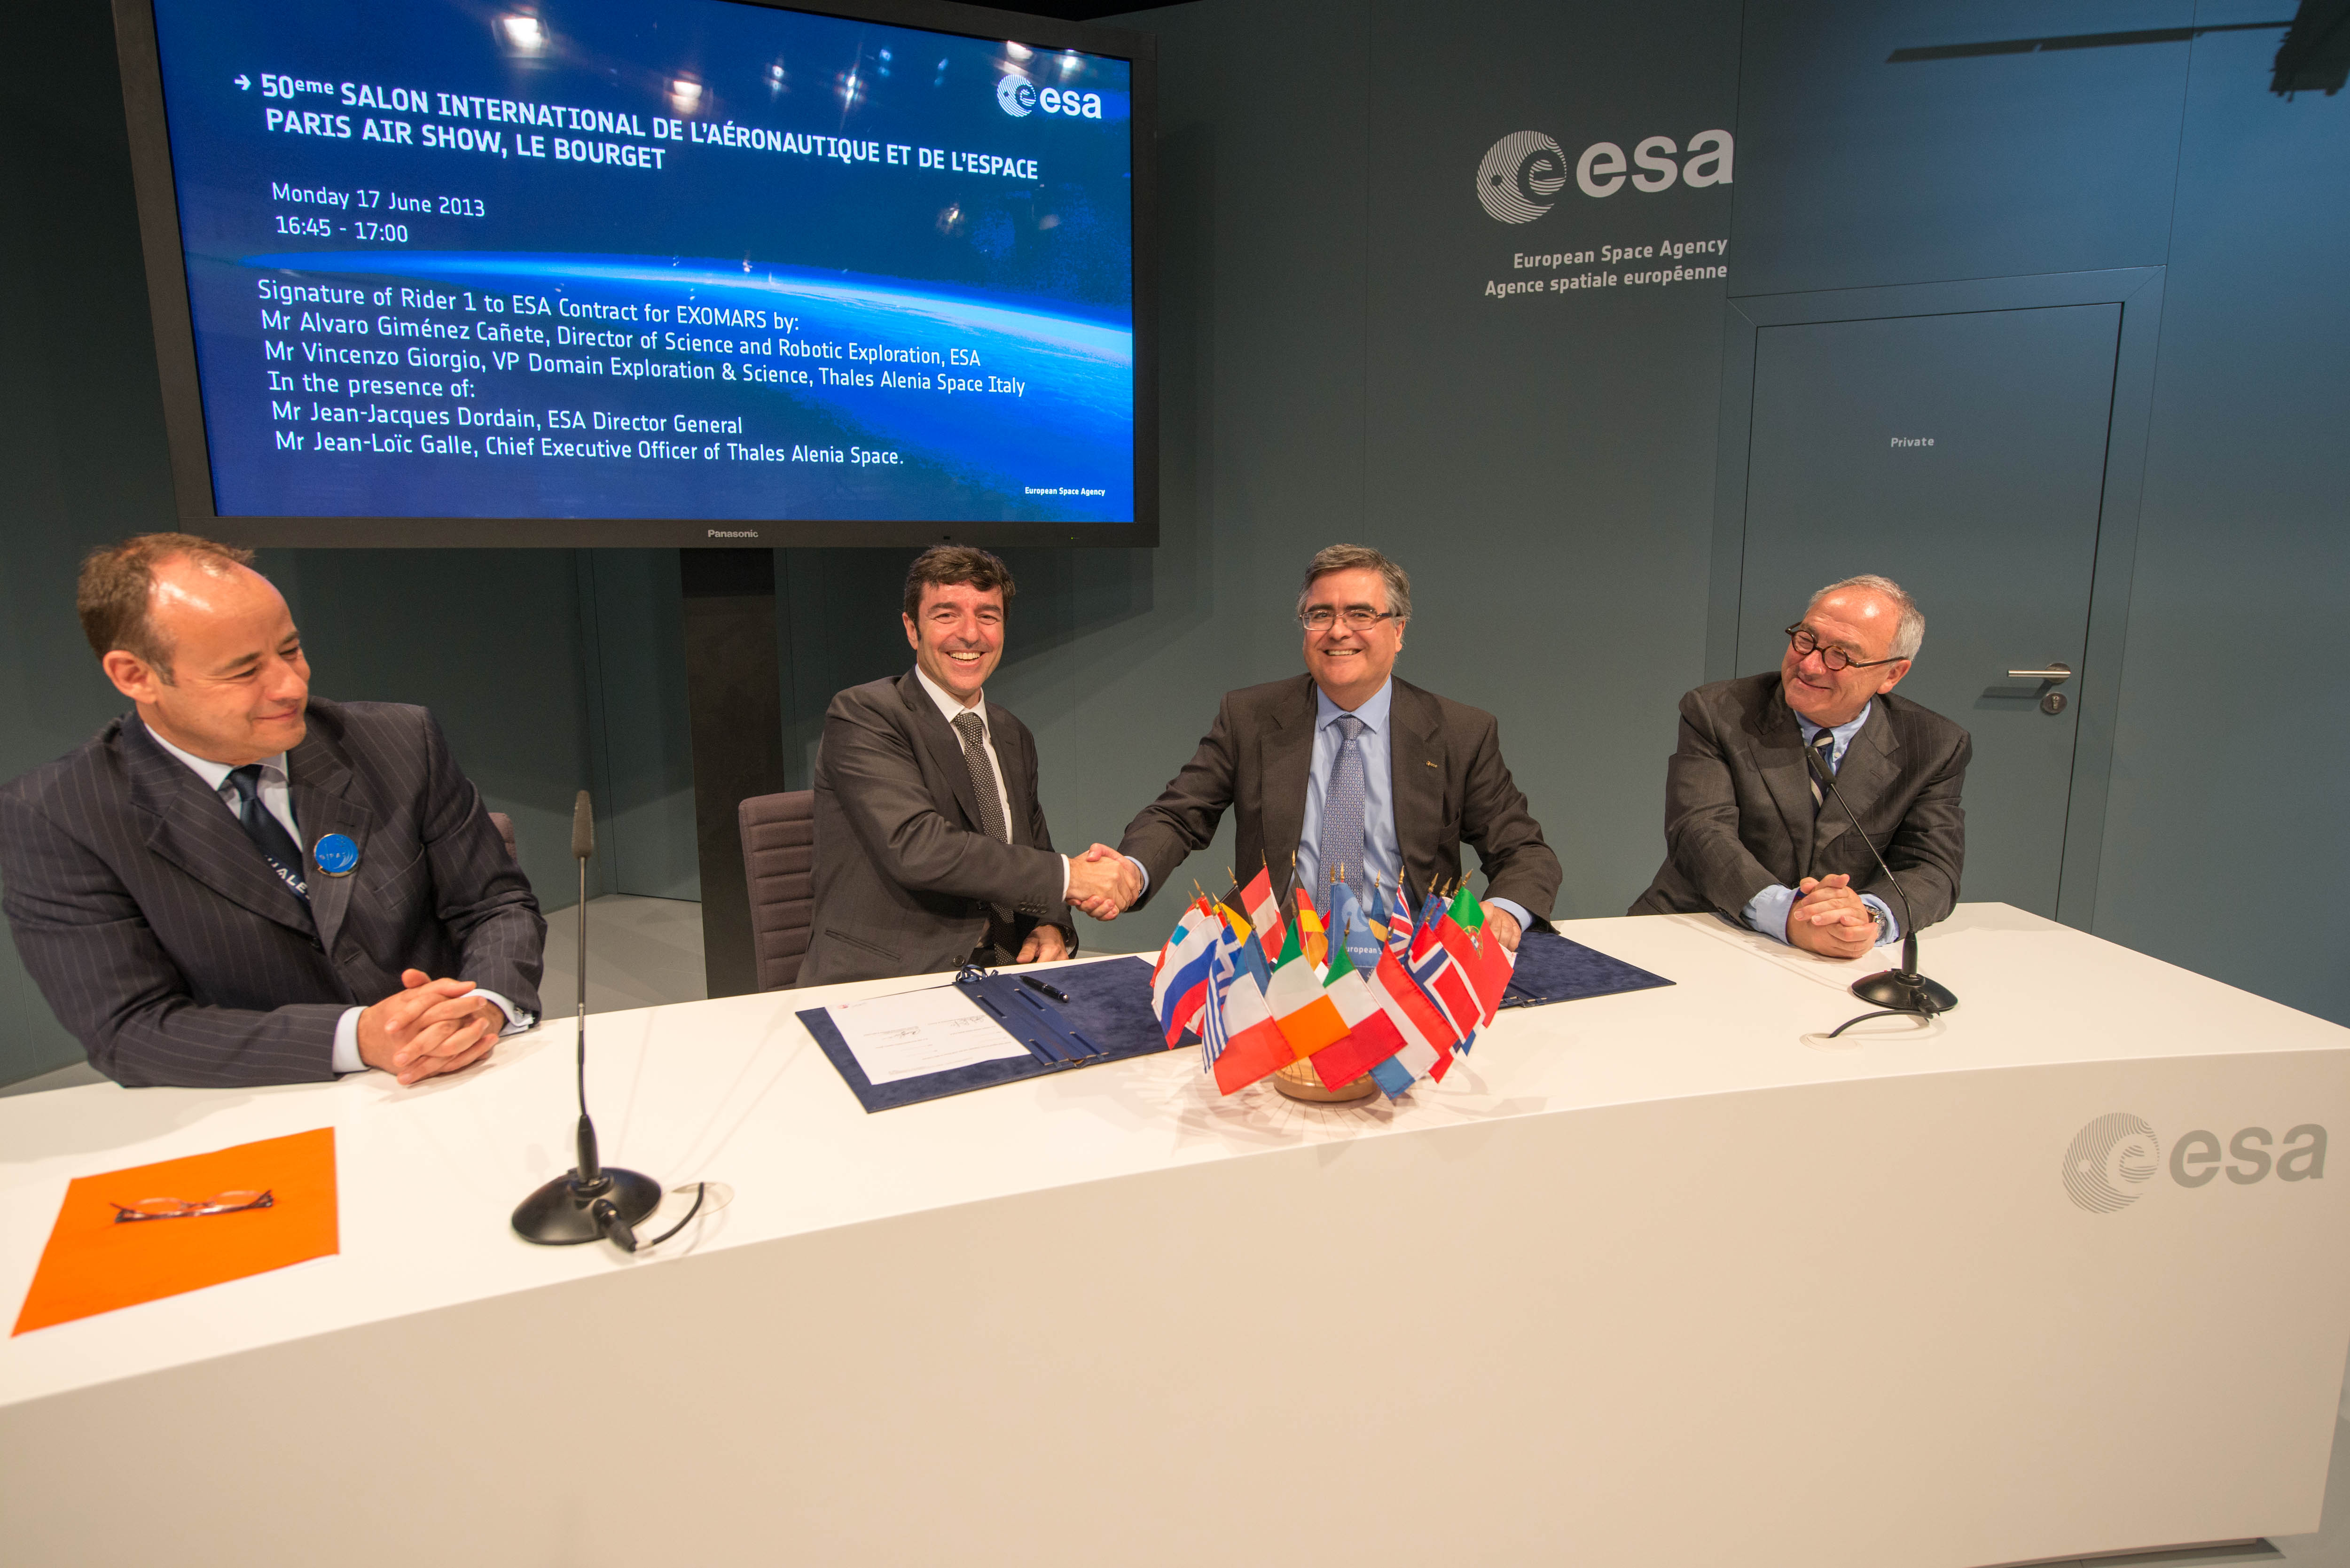 Space in Images - 2013 - 06 - Signature of Rider 1 to ESA Contract